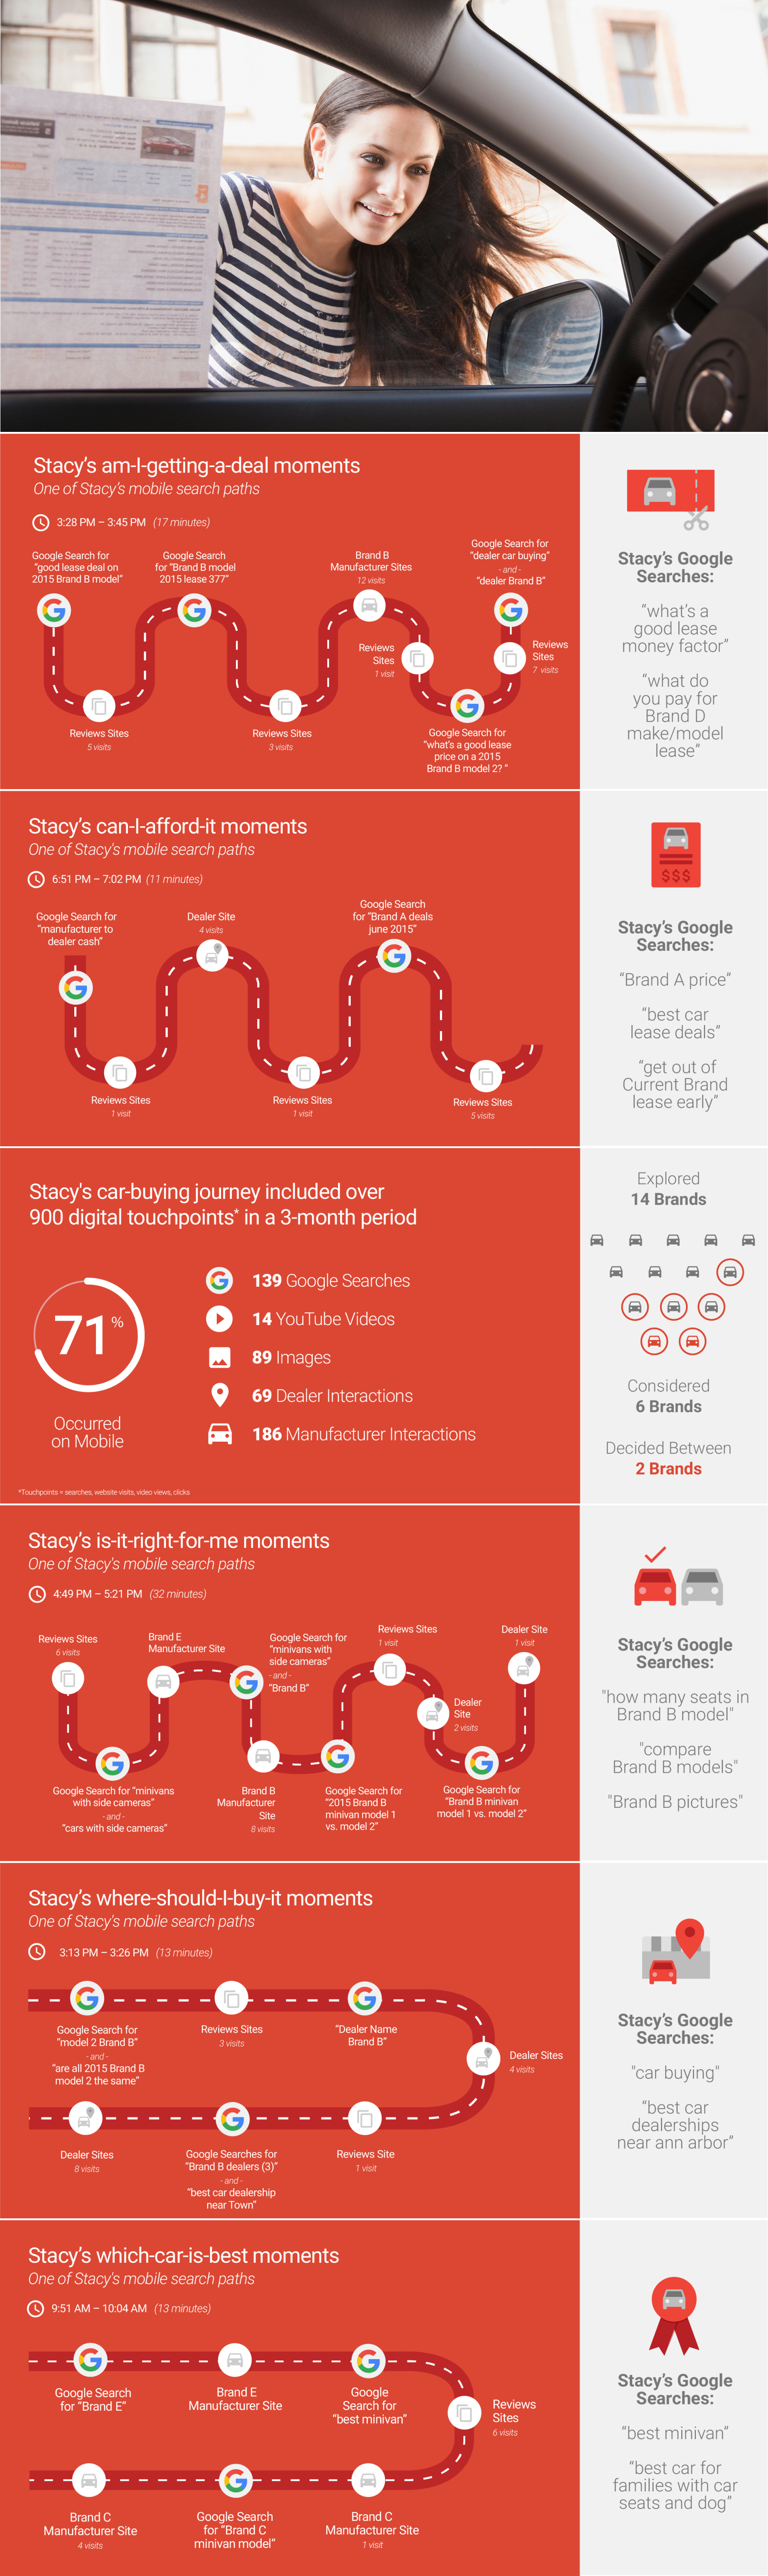 Car Buyer Journey Micro-Moments infographic.png